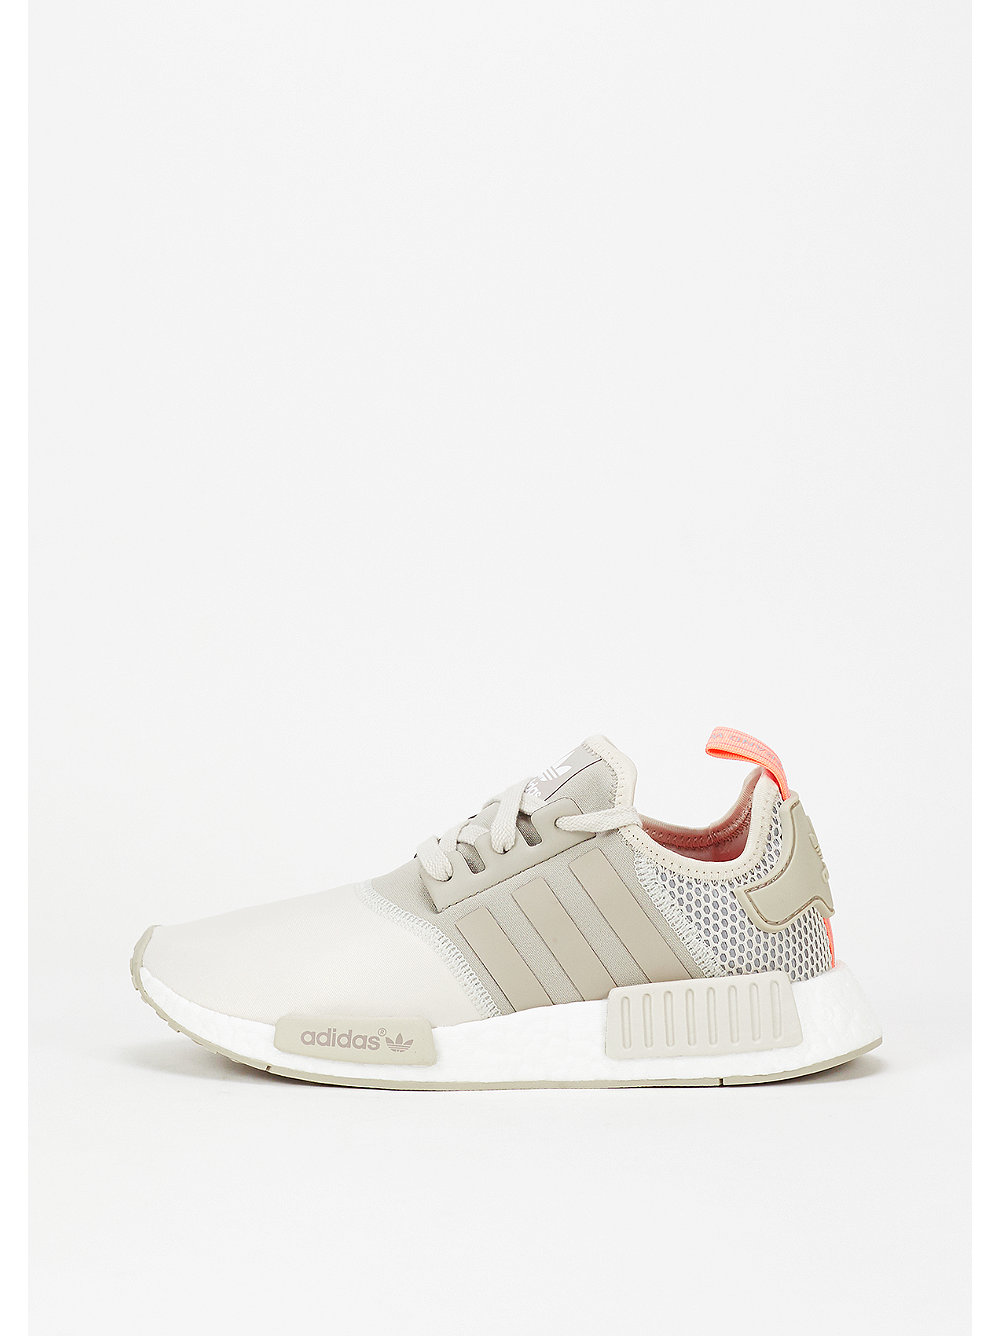 adidas nmd r1 wit dames